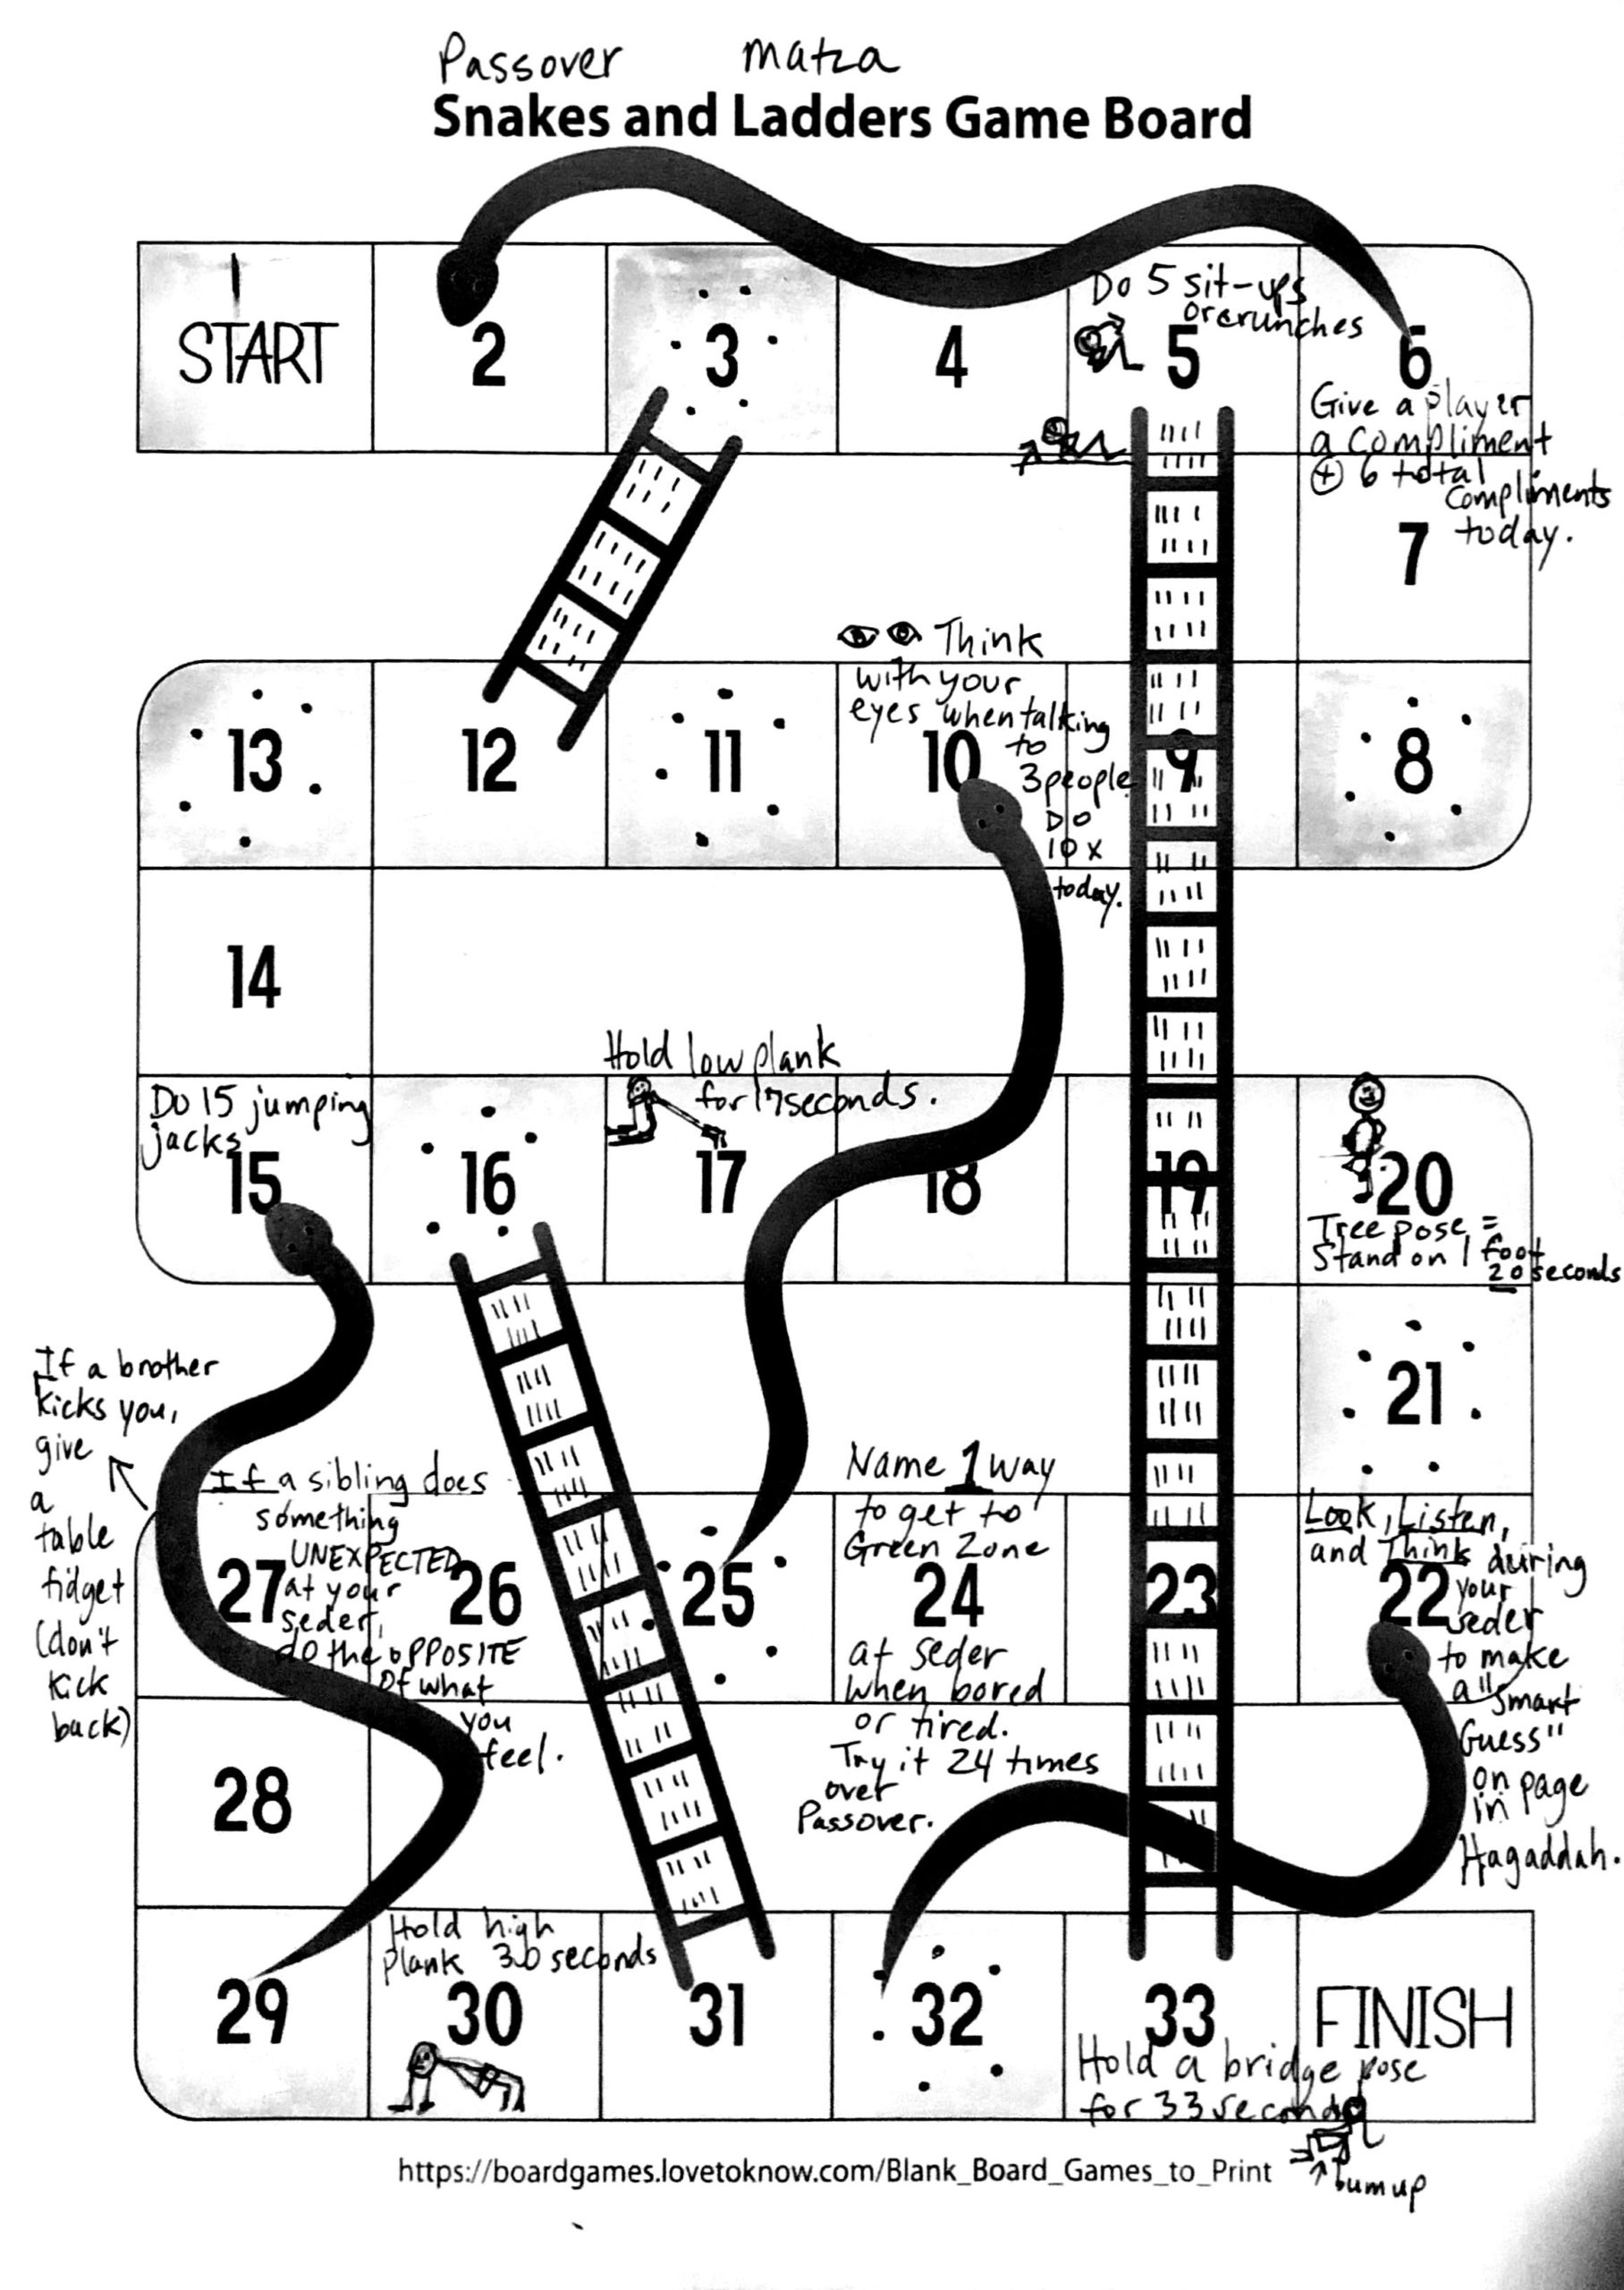 Game Board for Passover Snakes and Matza Ladders Seder game